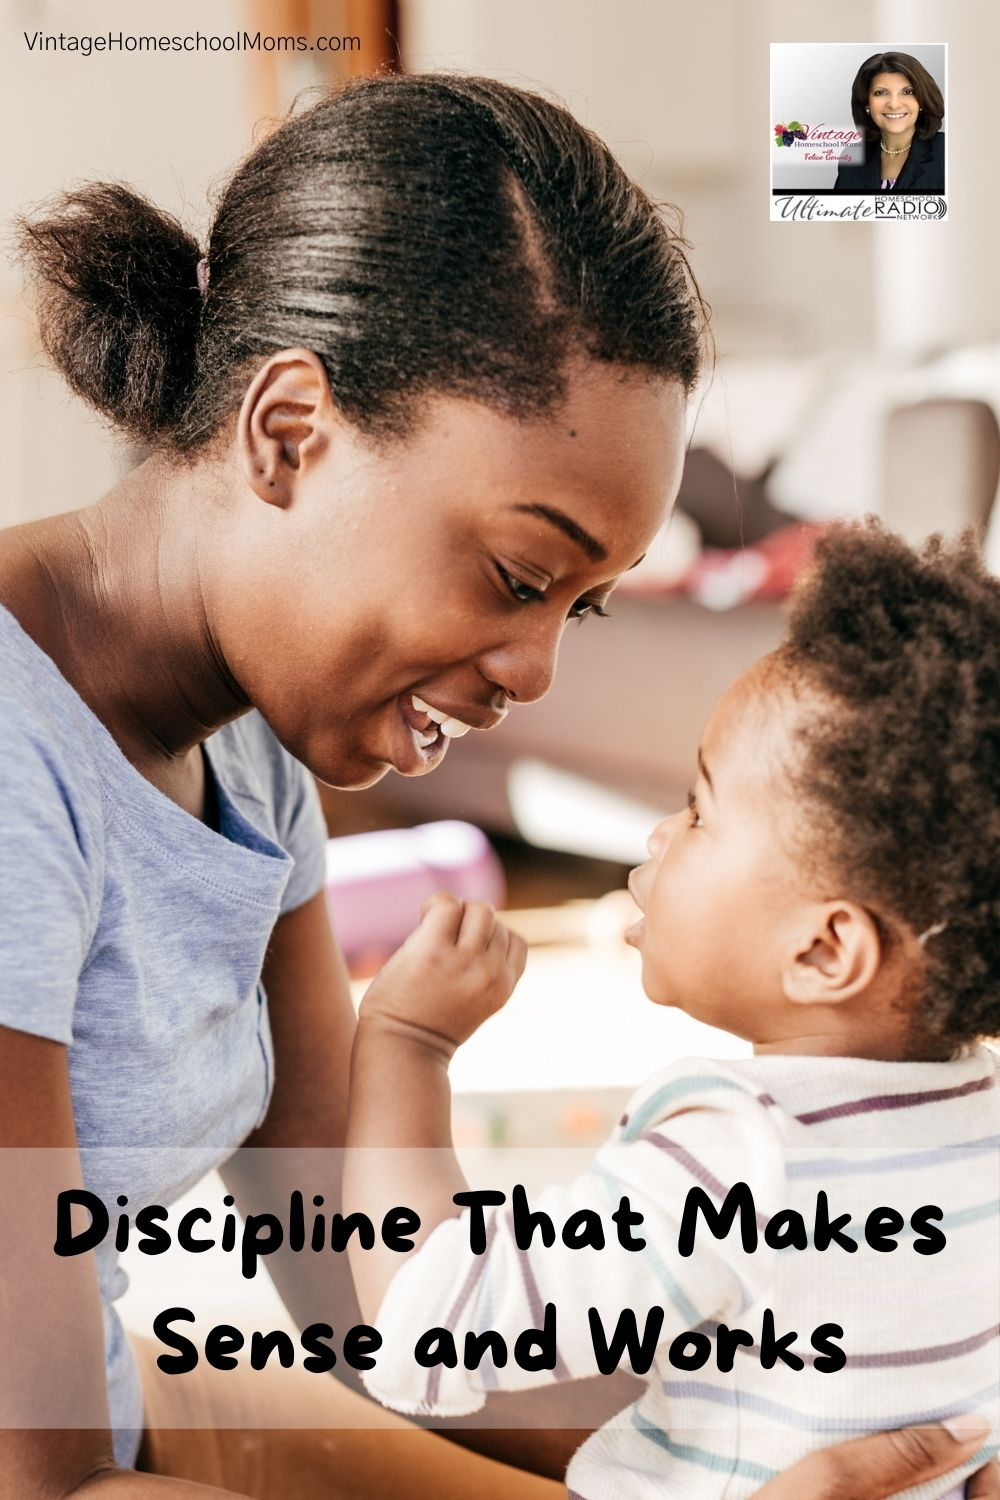 Let's Talk About Discipline That Makes Sense And Works with Felice Gerwitz